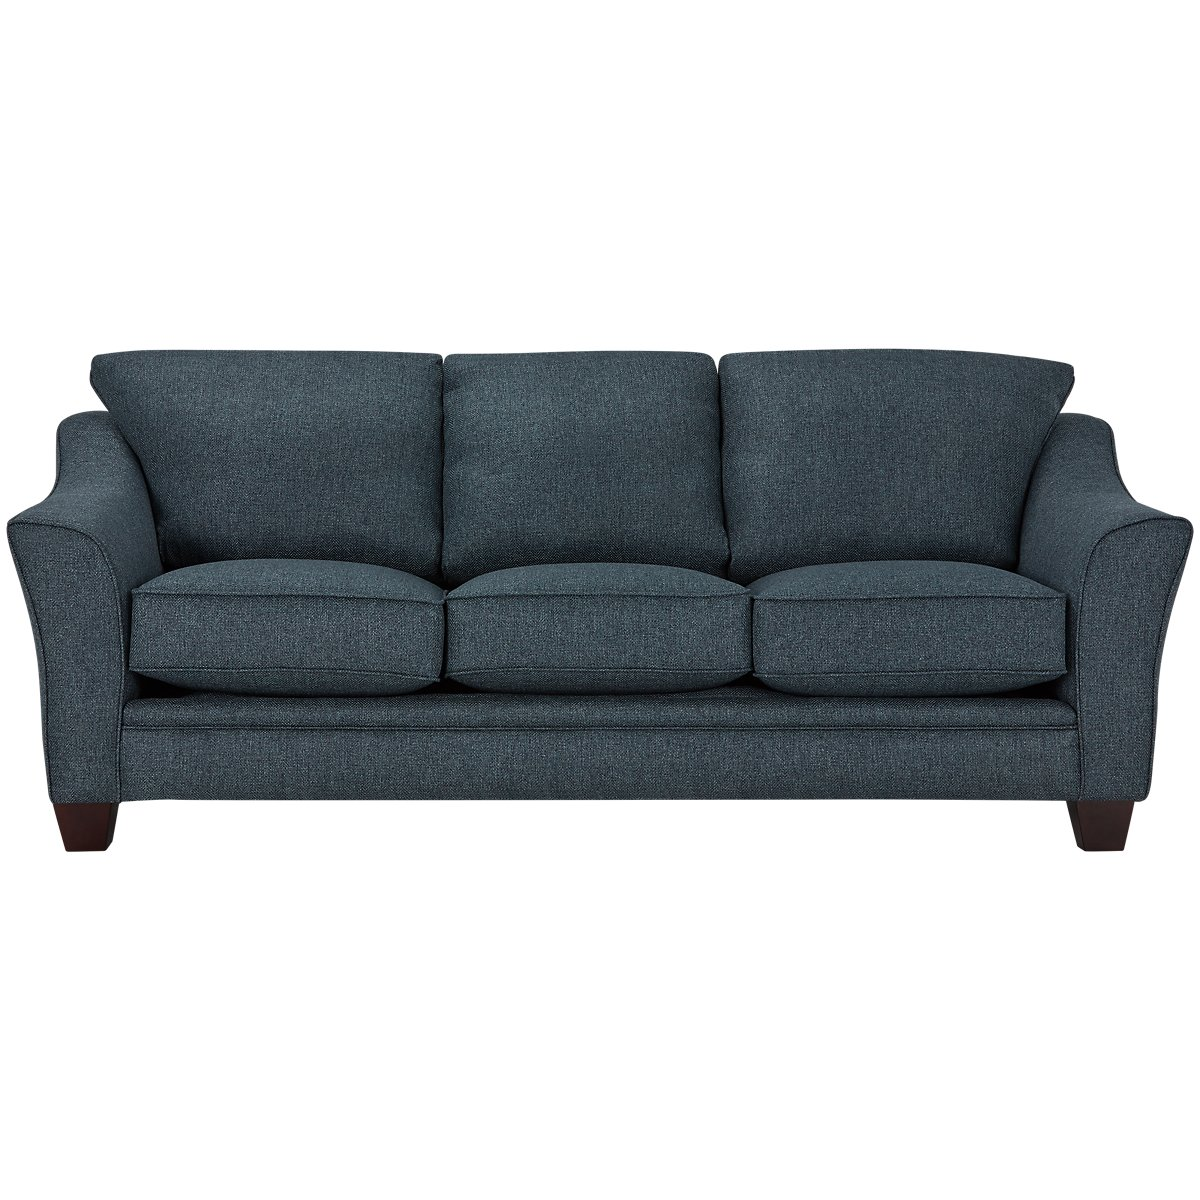 Jolanda Tufted Blue Fabric Sofa Set